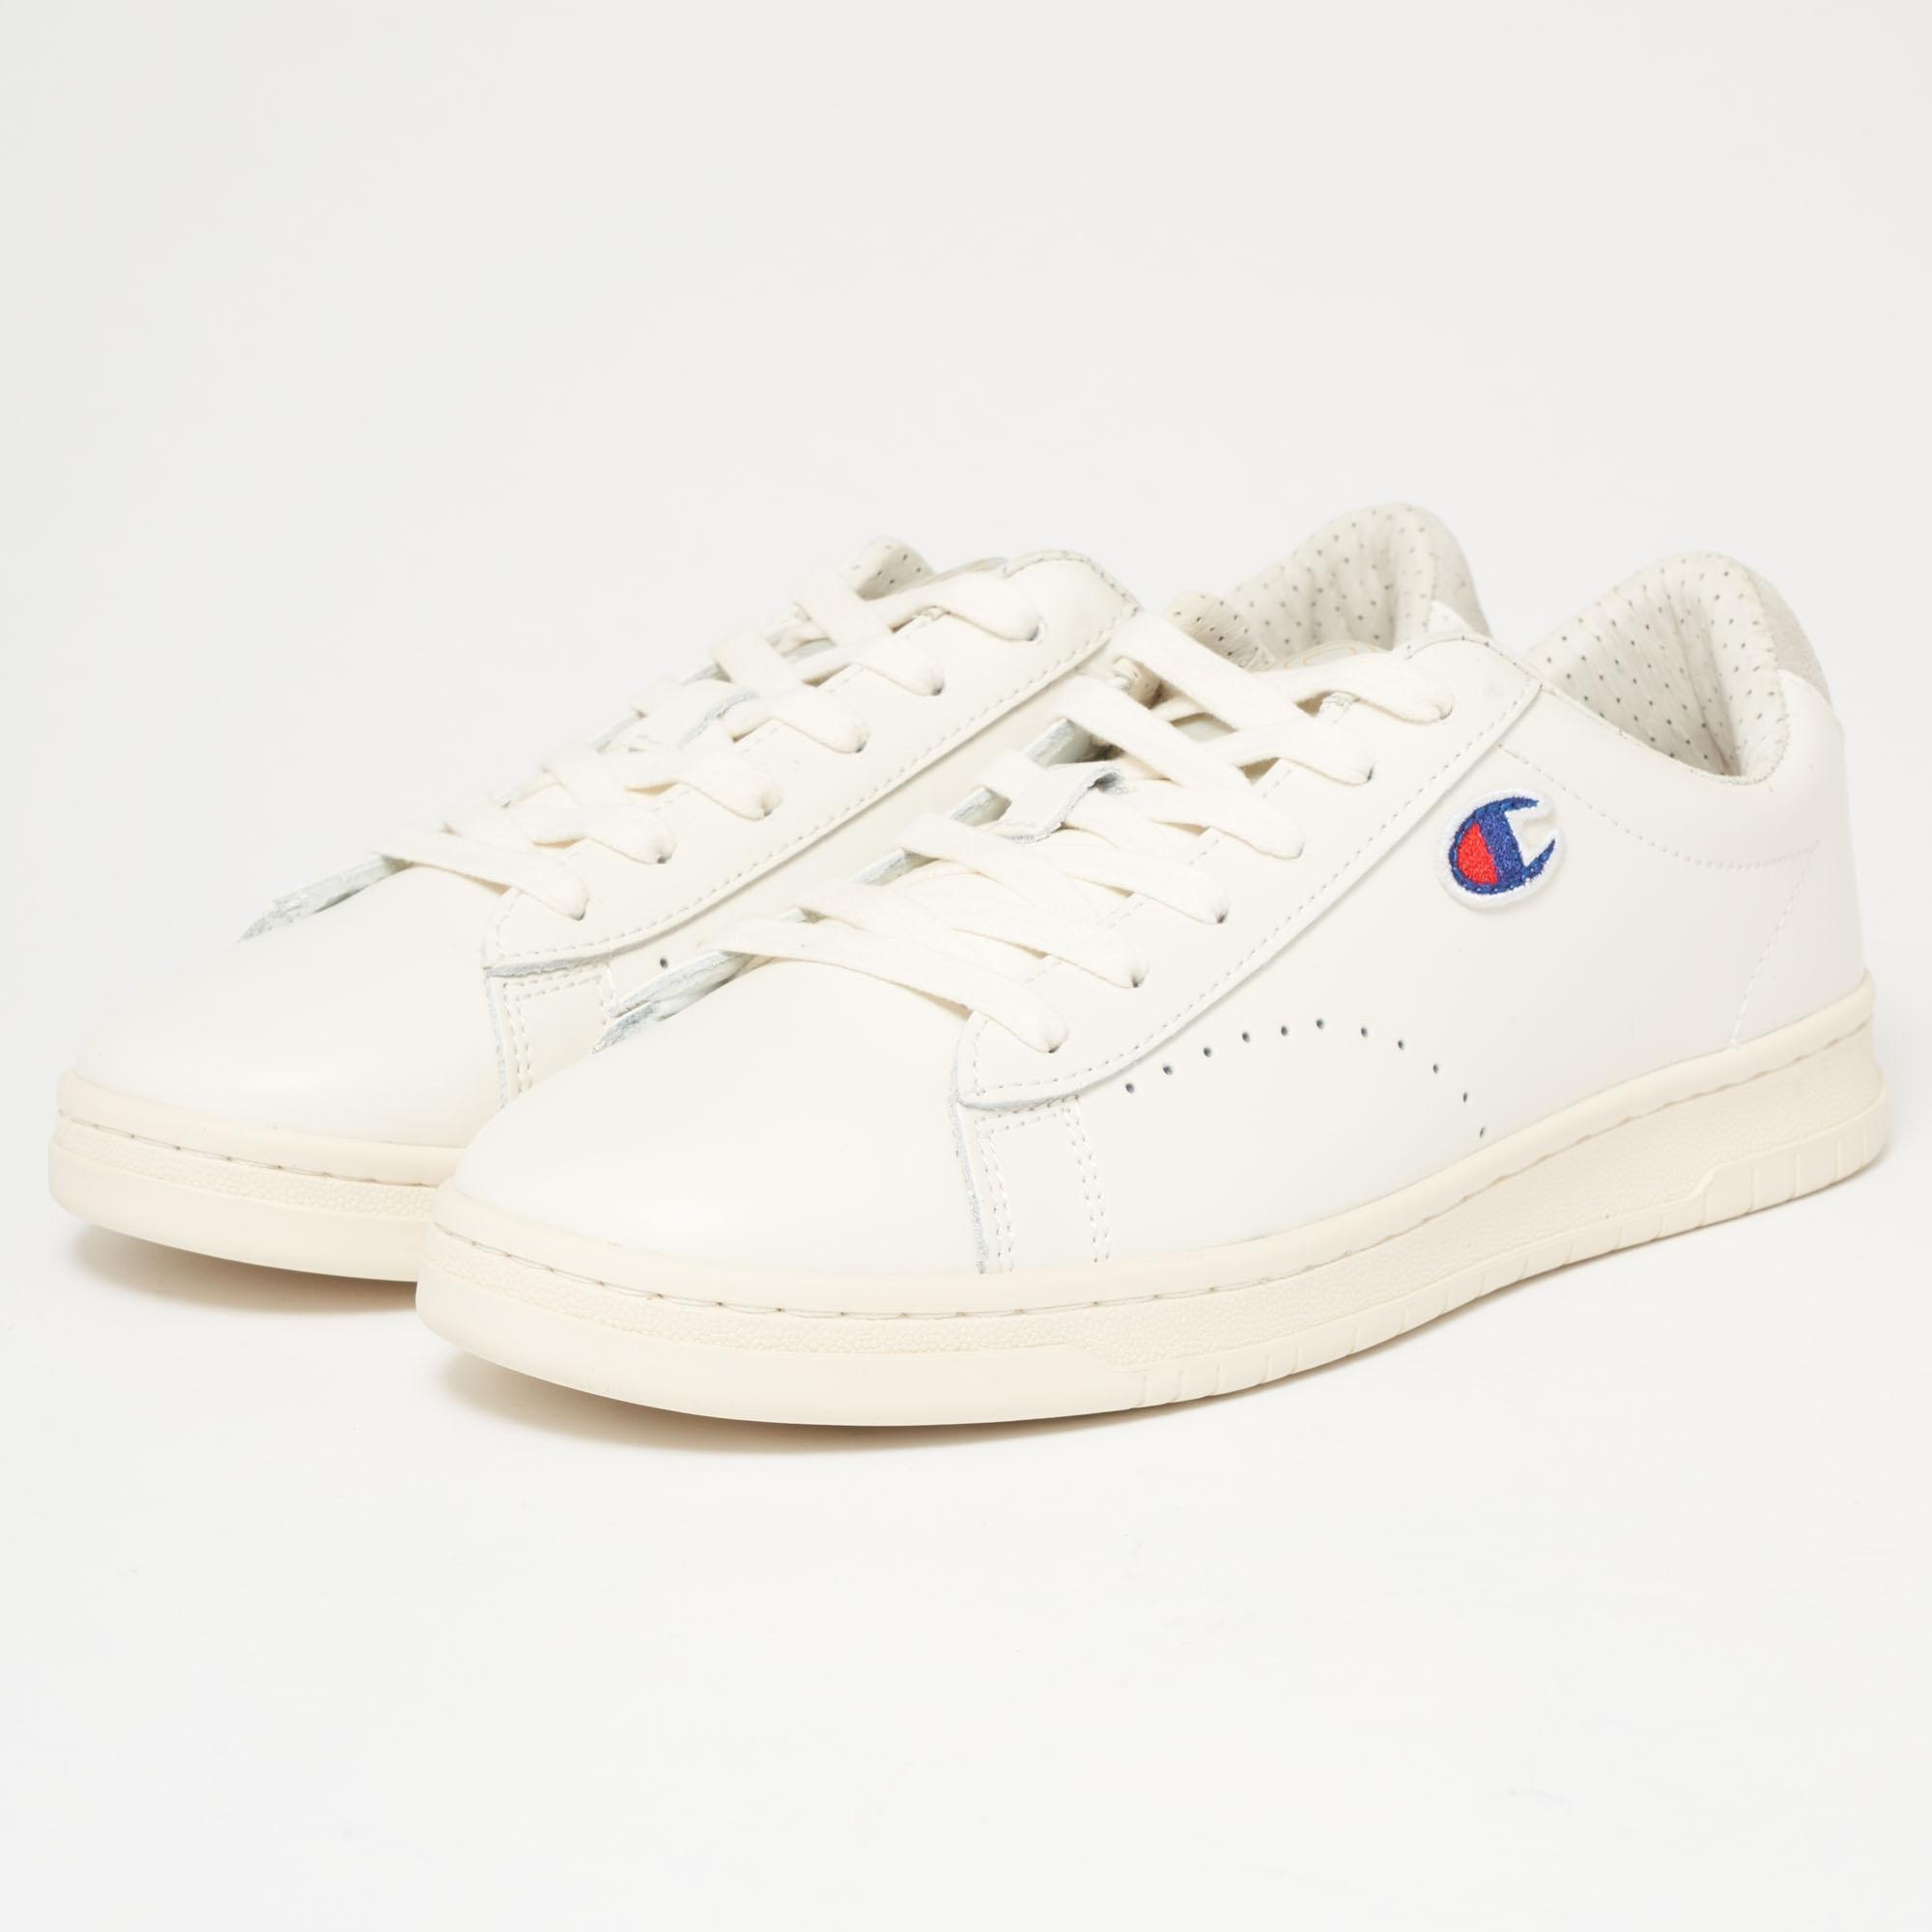 e83d57aff11b9 Lyst - Champion 919 Low Top  c  Patch Trainers in White for Men ...